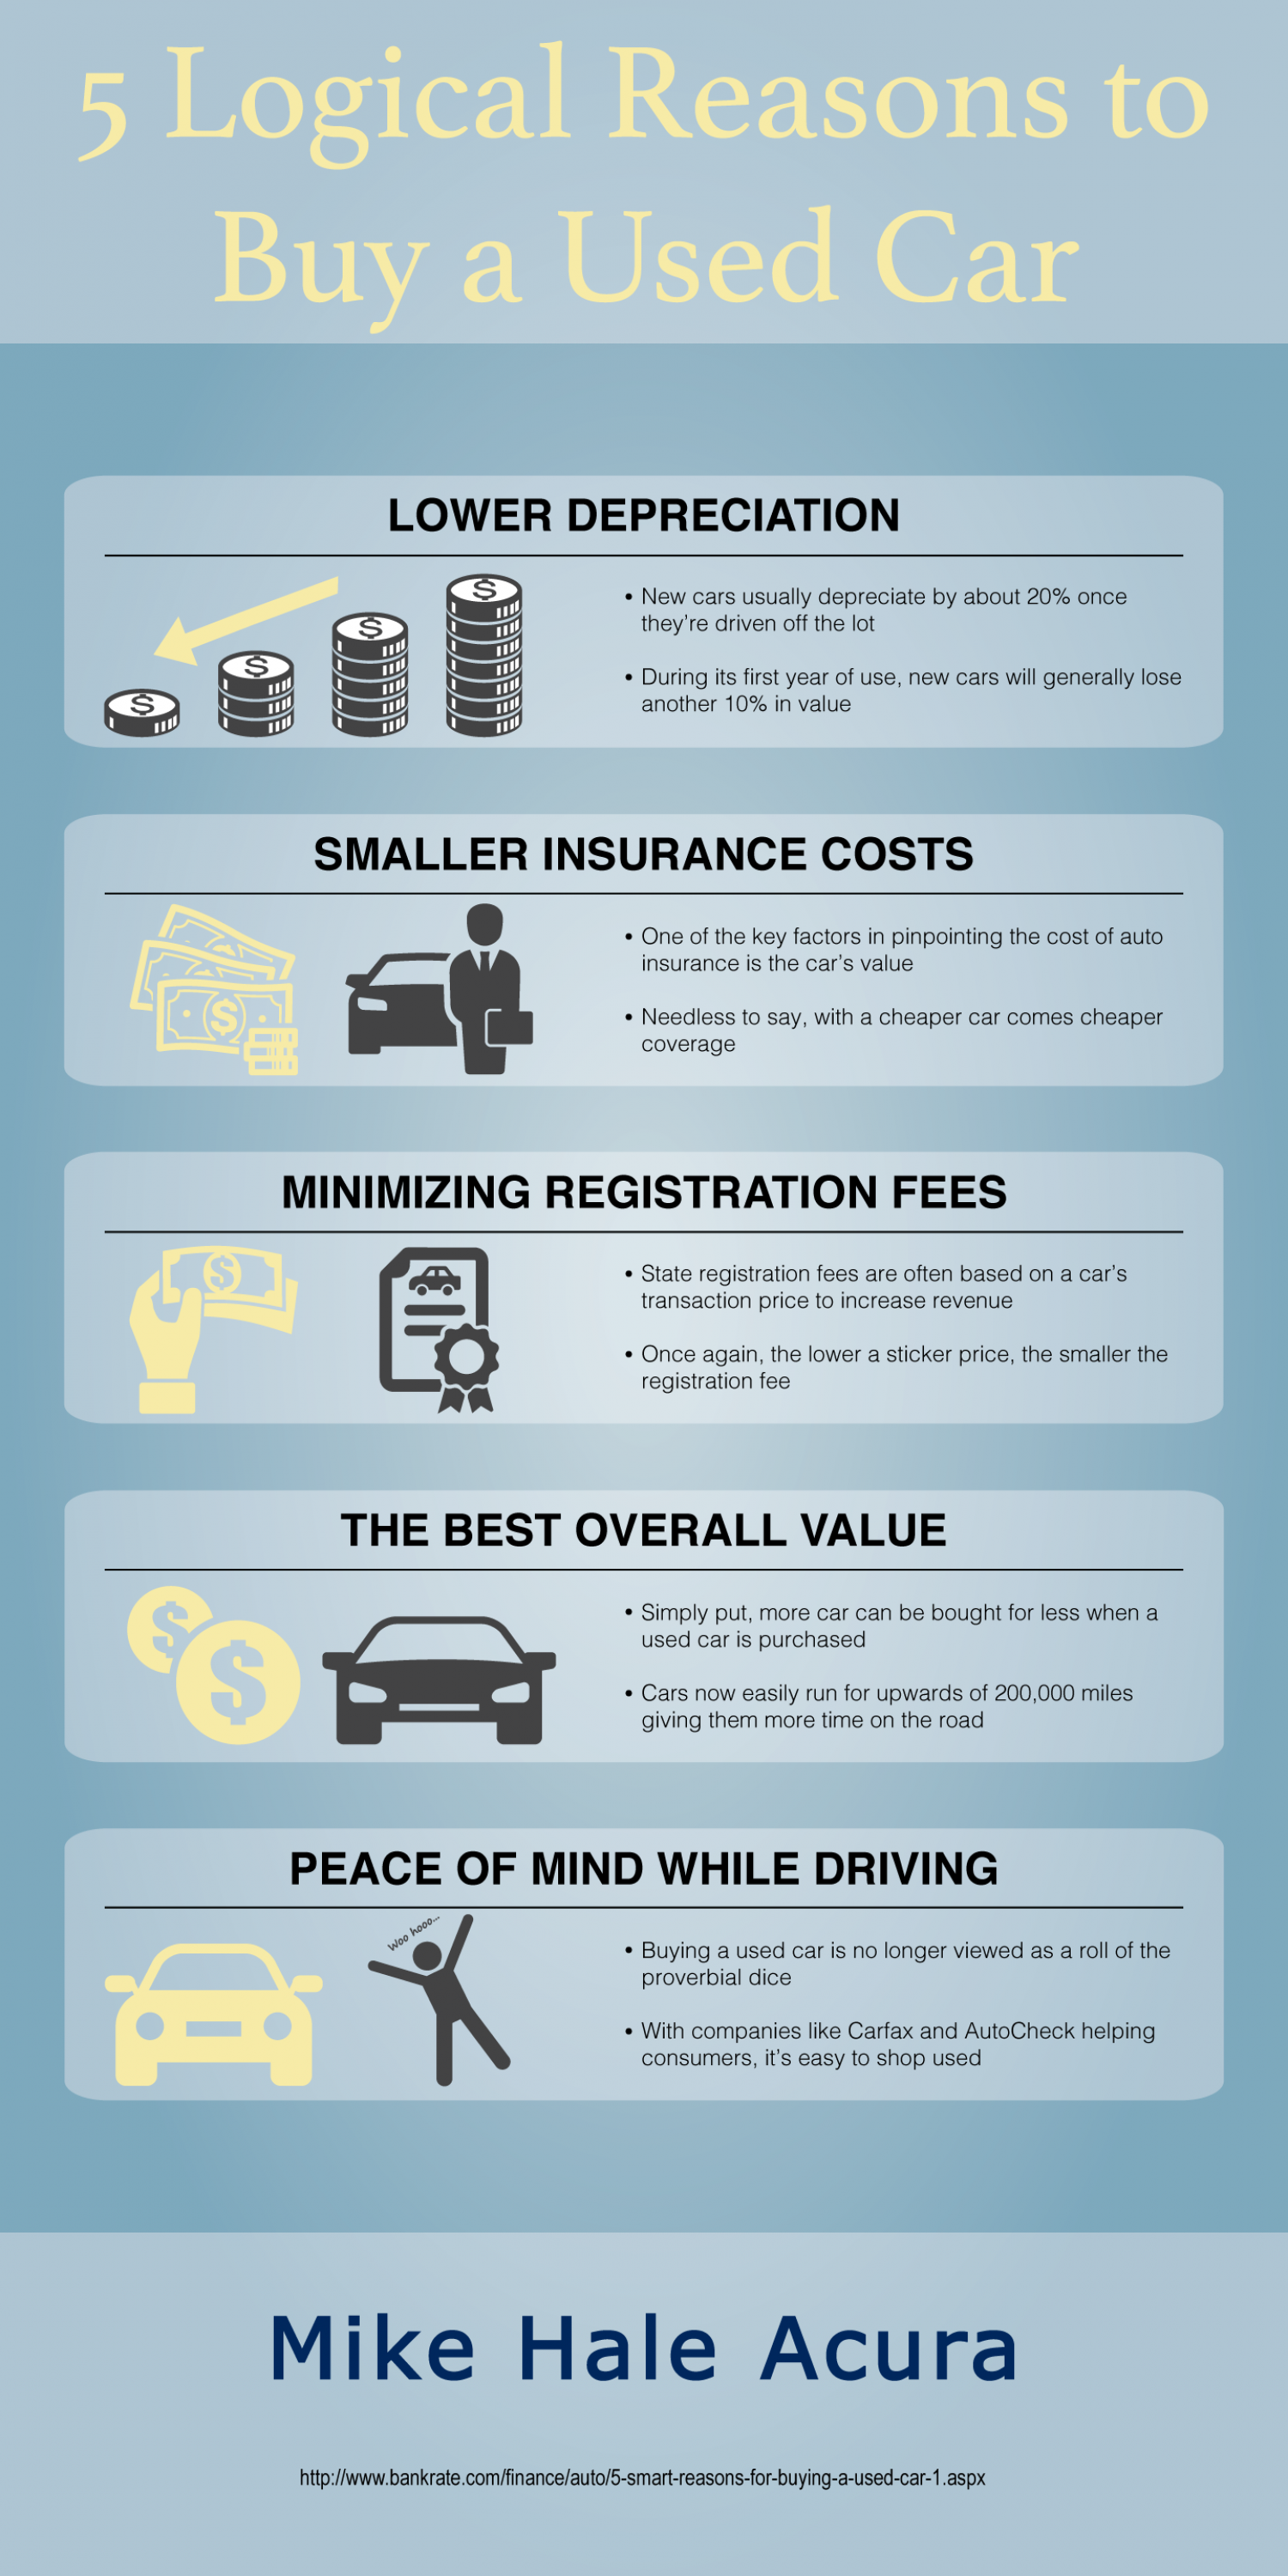 5 Logical Reasons to Buy a Used Car | Visual.ly